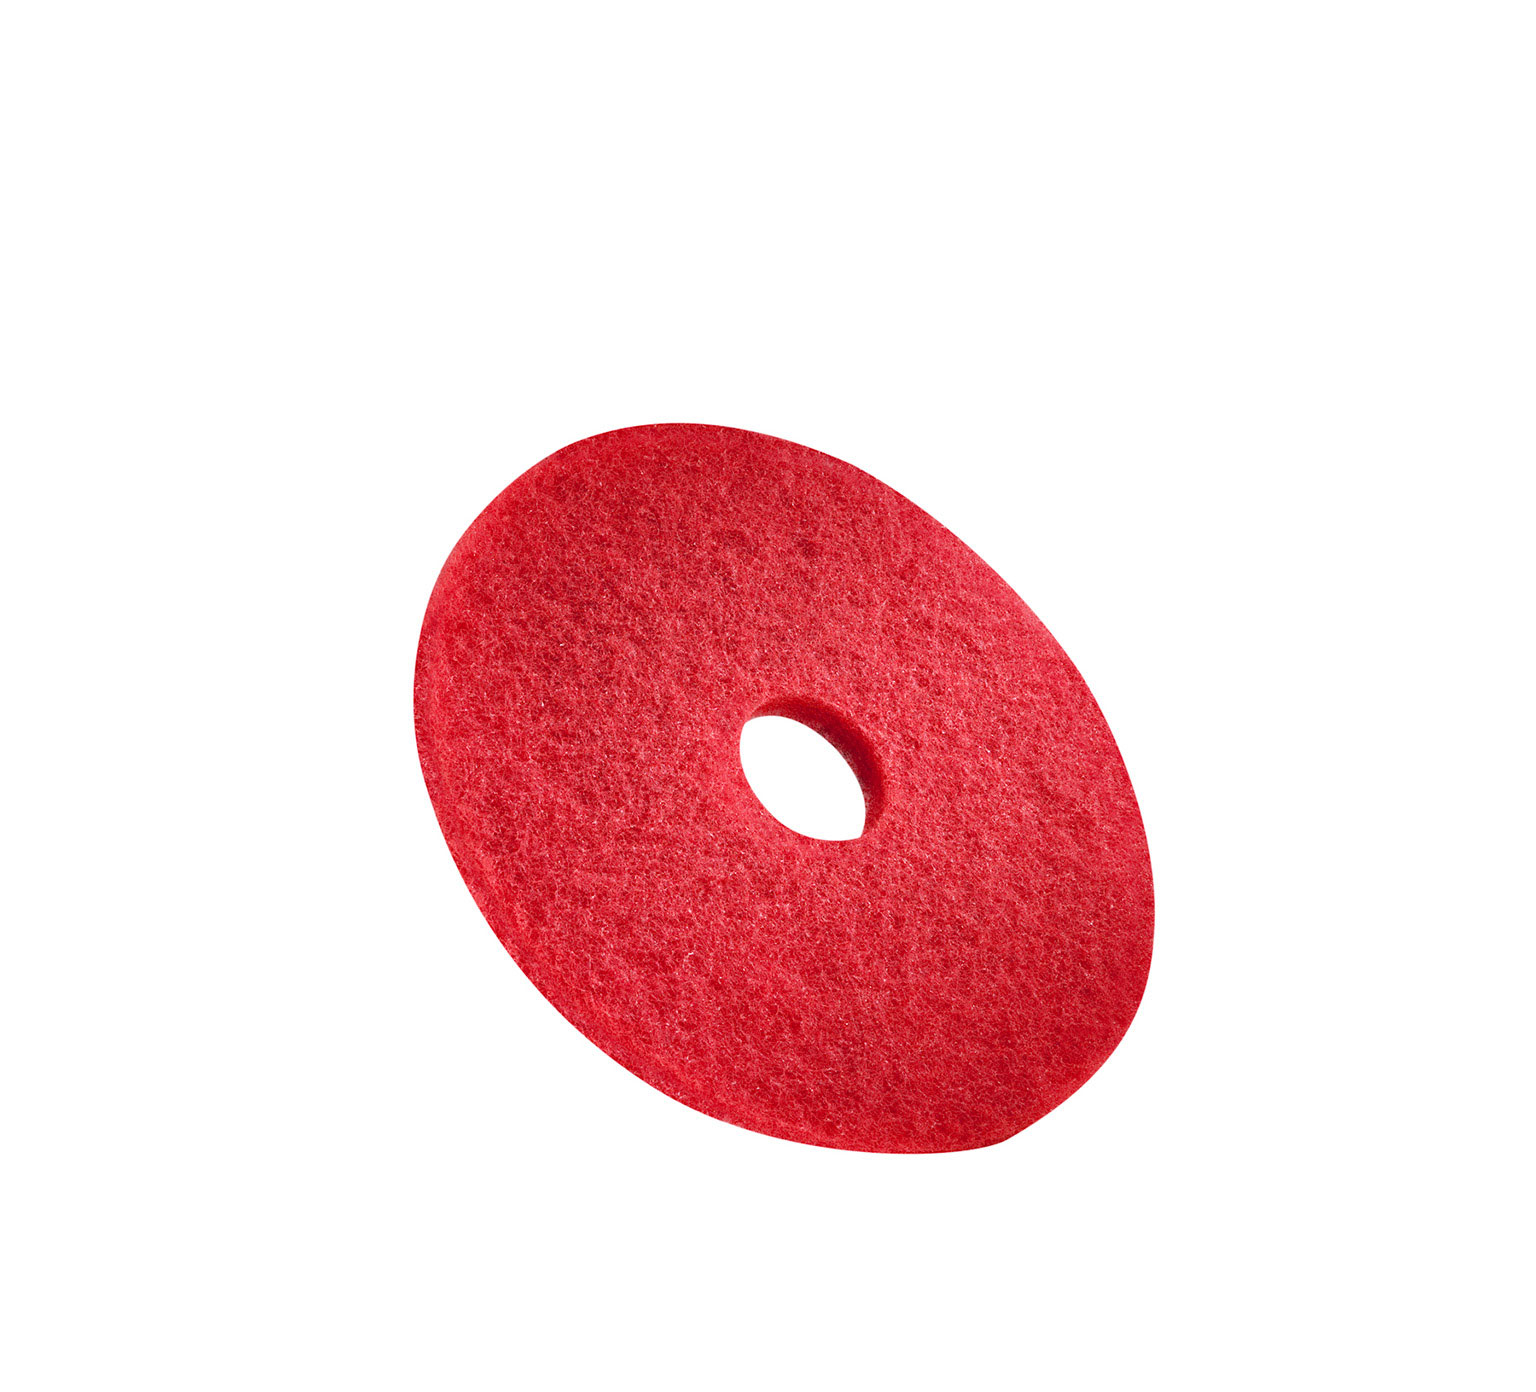 63248-3 3M Red Buffing Pad – 16 in / 406 mm alt 1